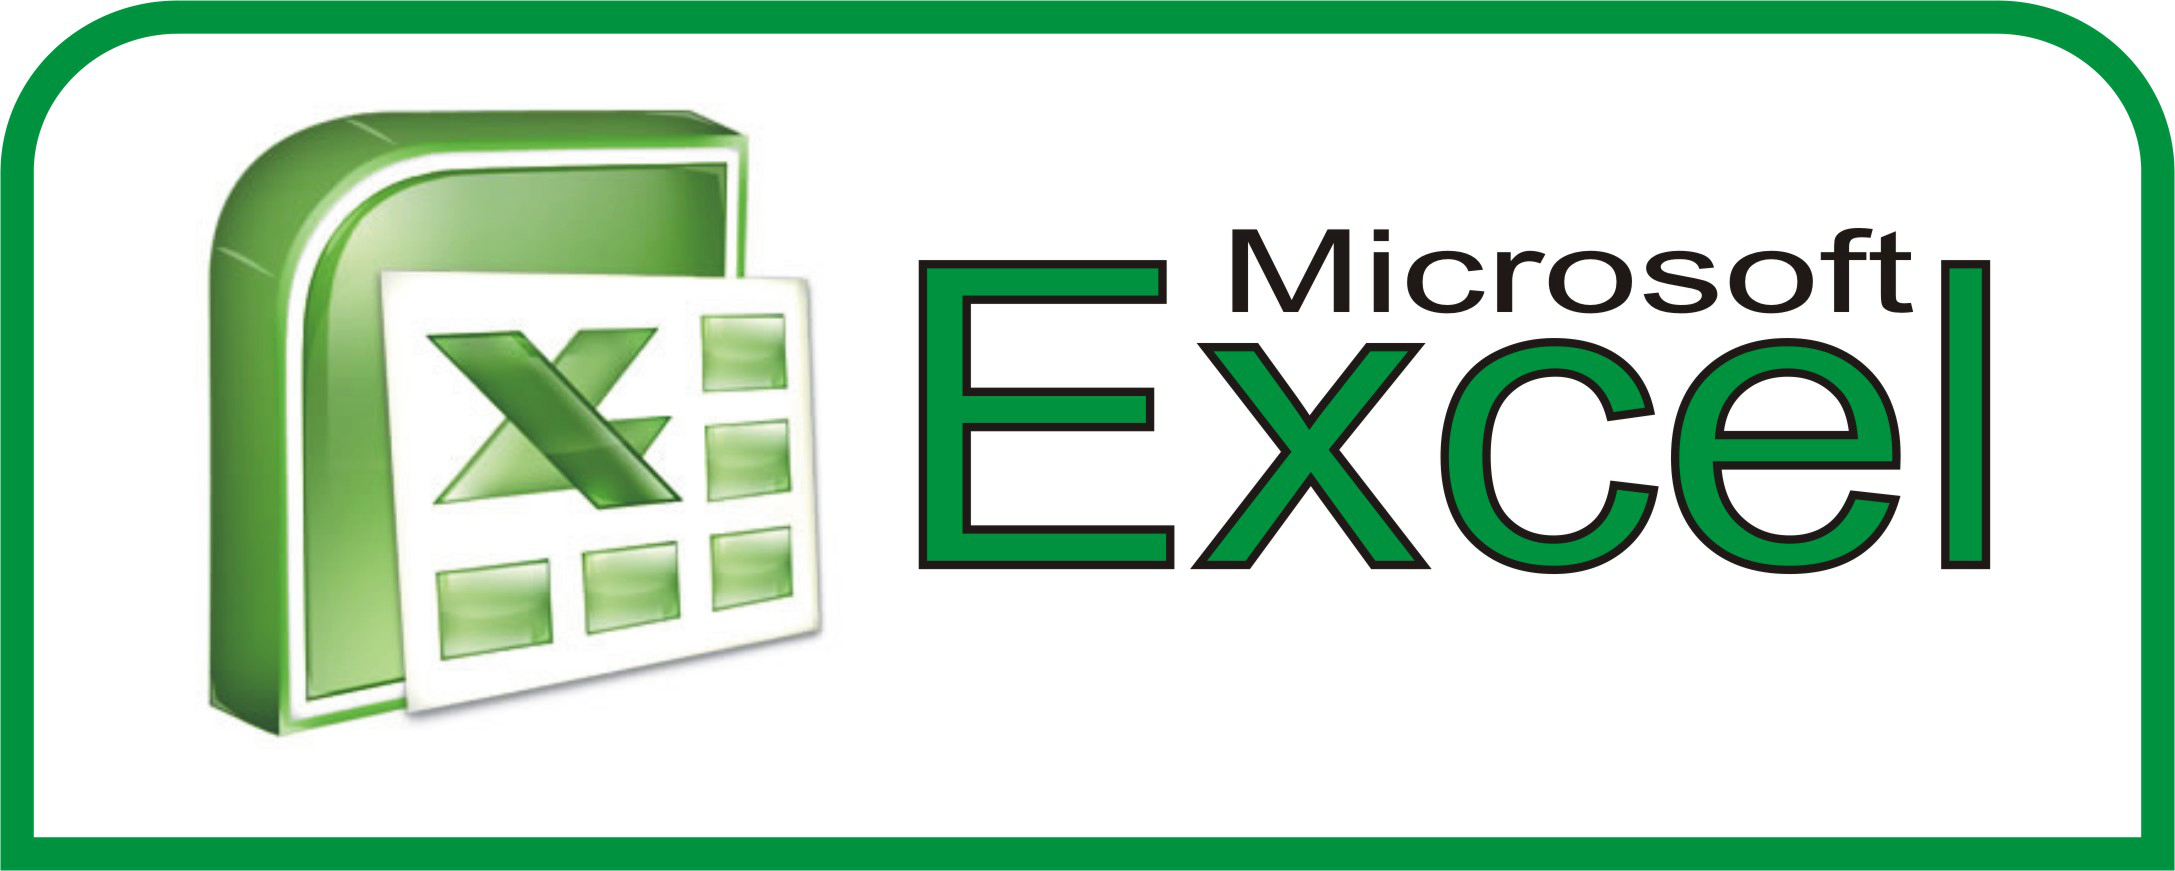 Ediblewildsus  Pretty  Excel Shortcuts You Probably Didnt Know About  Techdissected With Outstanding Excel Row Lock Besides Excel Color Names Furthermore Free Excel Worksheet With Breathtaking Root Cause Analysis Template Excel Also Barcode For Excel In Addition Pareto Distribution Excel And Lock Excel Cell As Well As Subtraction Equation In Excel Additionally How To Create Bar Graph In Excel  From Techdissectedcom With Ediblewildsus  Outstanding  Excel Shortcuts You Probably Didnt Know About  Techdissected With Breathtaking Excel Row Lock Besides Excel Color Names Furthermore Free Excel Worksheet And Pretty Root Cause Analysis Template Excel Also Barcode For Excel In Addition Pareto Distribution Excel From Techdissectedcom